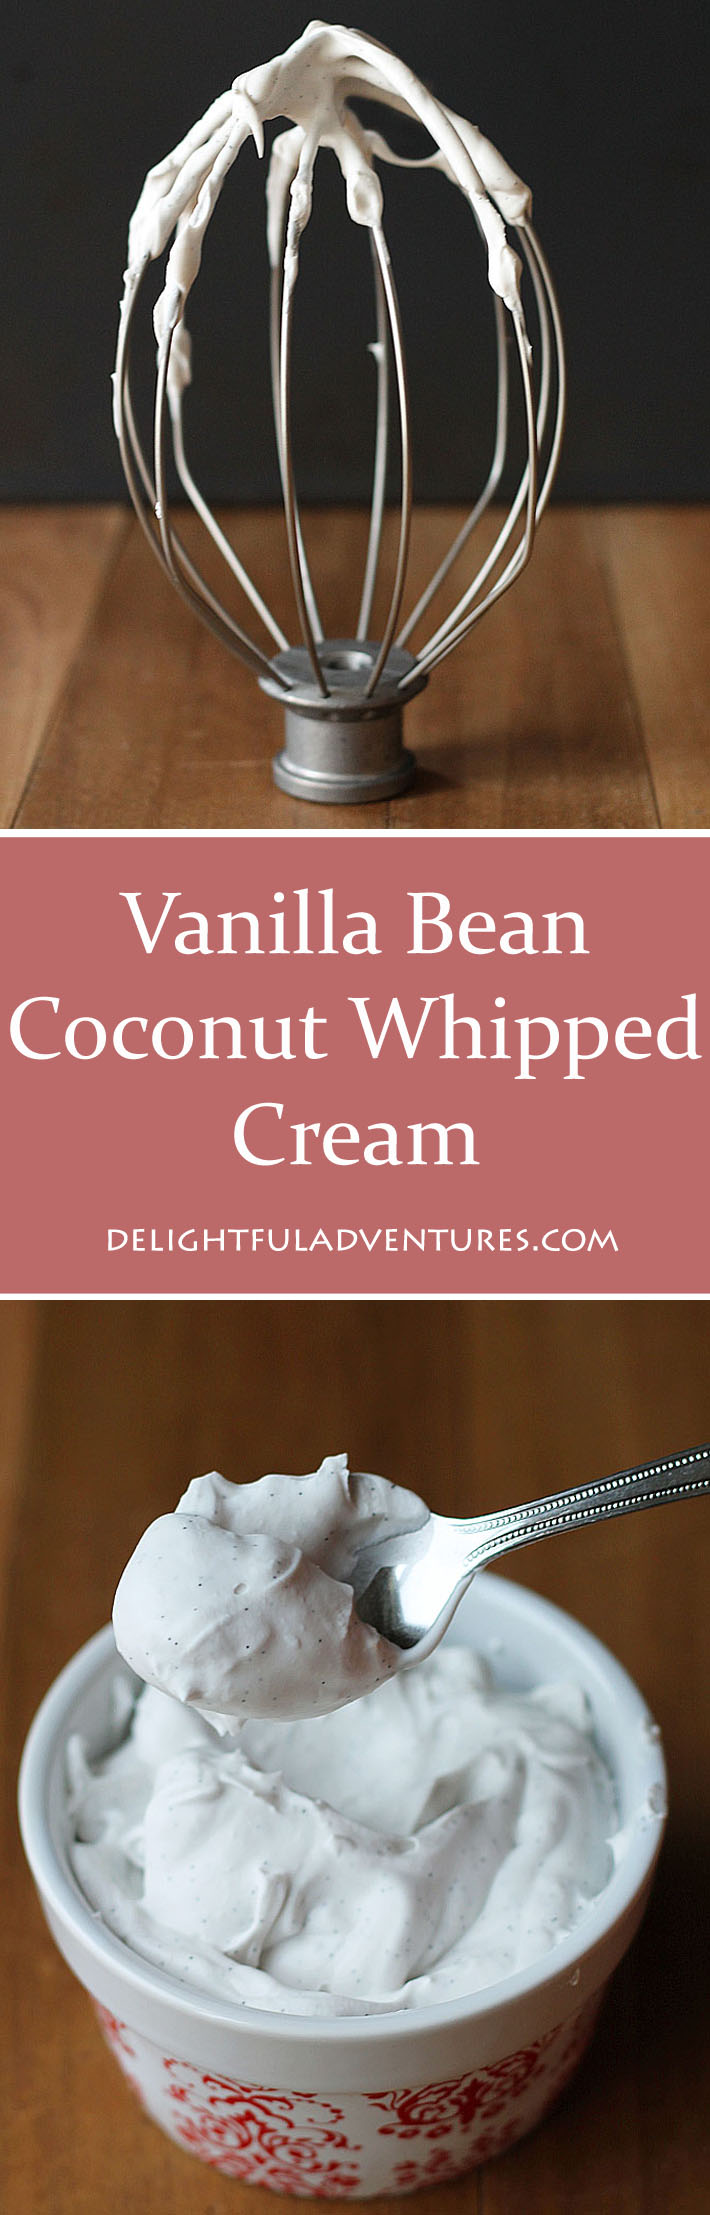 Try this decadent, creamy, dairy-free vanilla bean coconut whipped cream as a delicious (and better!) replacement for regular whipped cream.